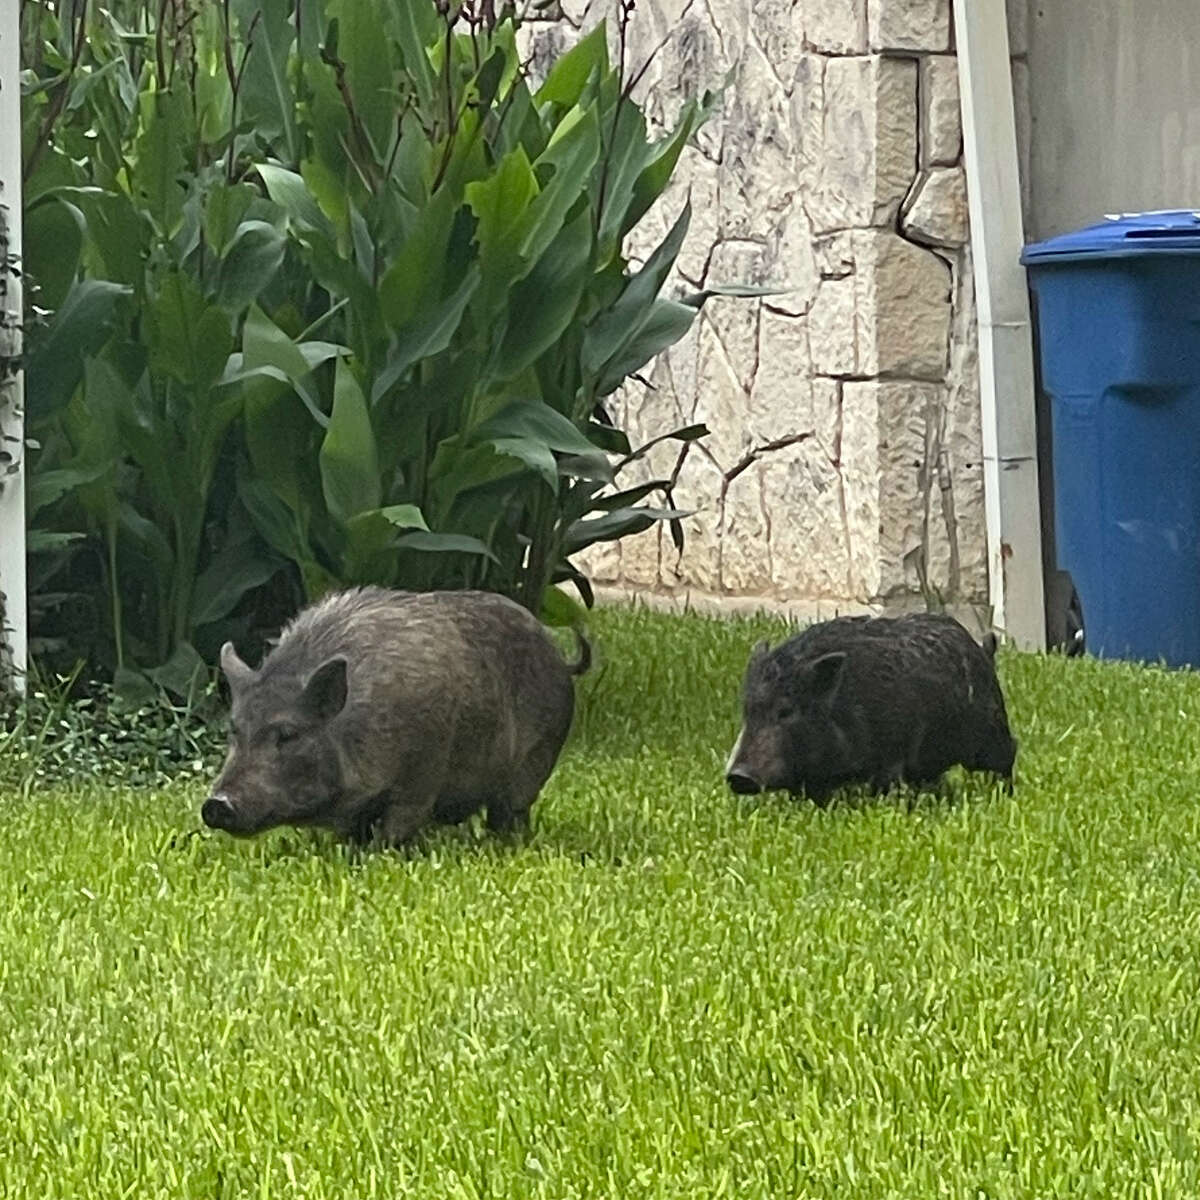 Two 40-pound pigs were spotted just before sunrise on the 200 block of West Hermosa Drive near San Pedro Avenue and Olmos Park.